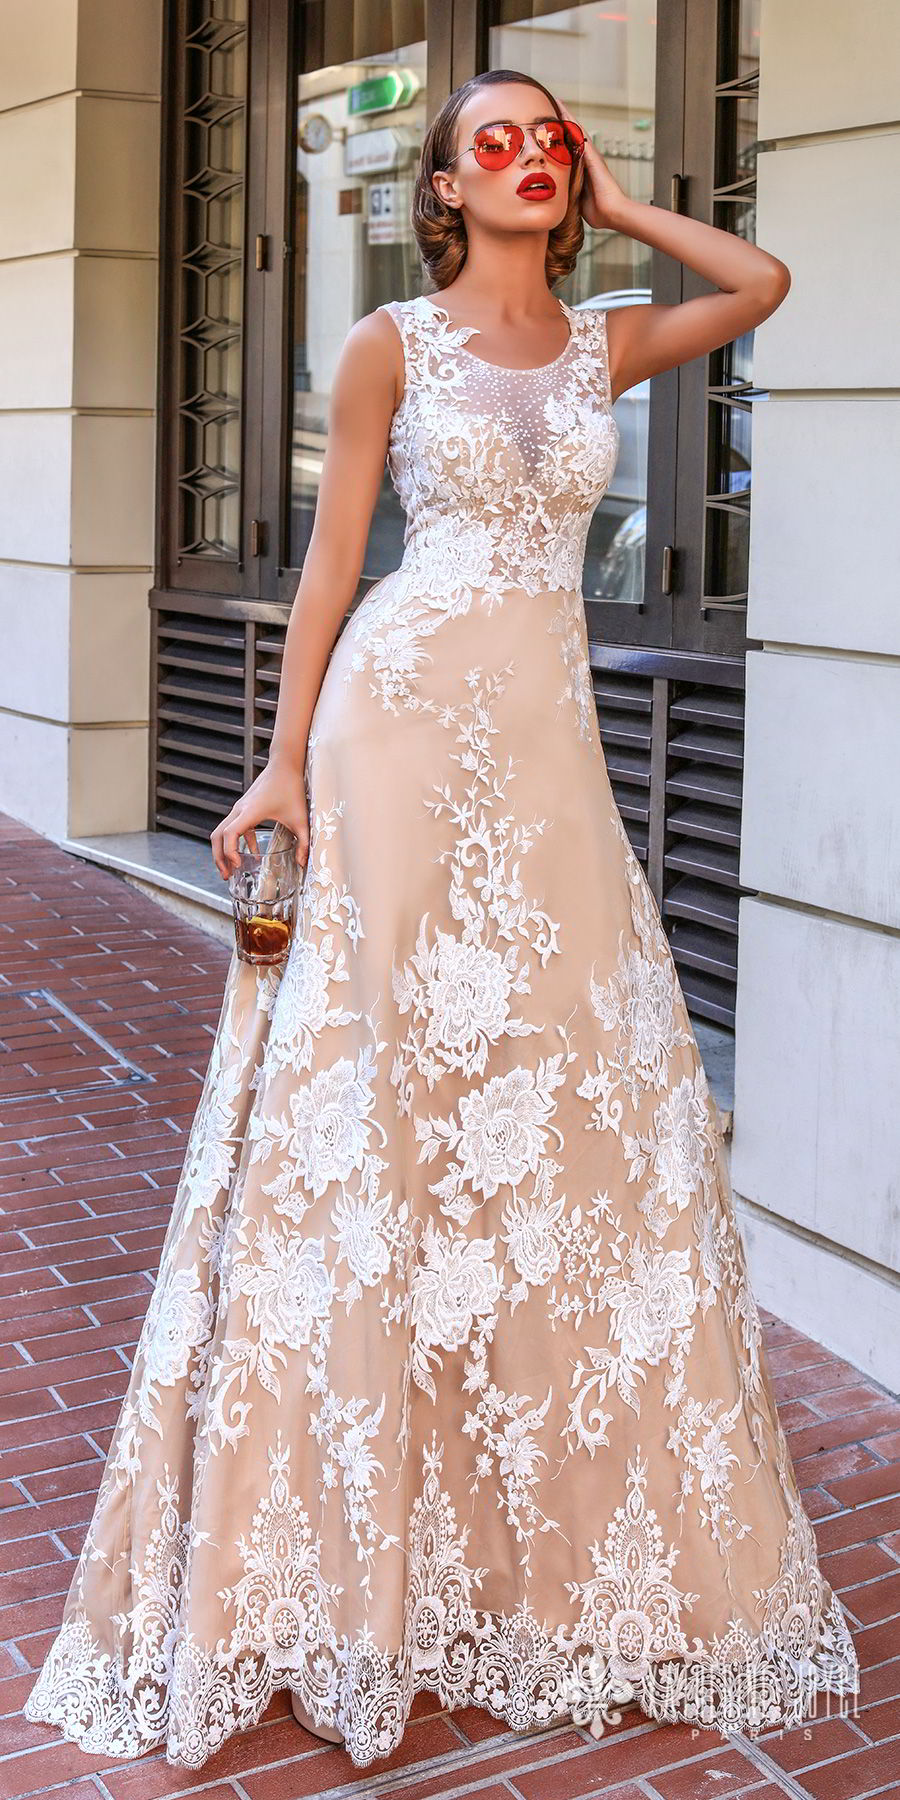 katherine joyce 2018 bridal sleeveless jewel neck full embellishment elegant romantic champagne color a  line wedding dress sheer lace back sweep train (marisabelle) mv